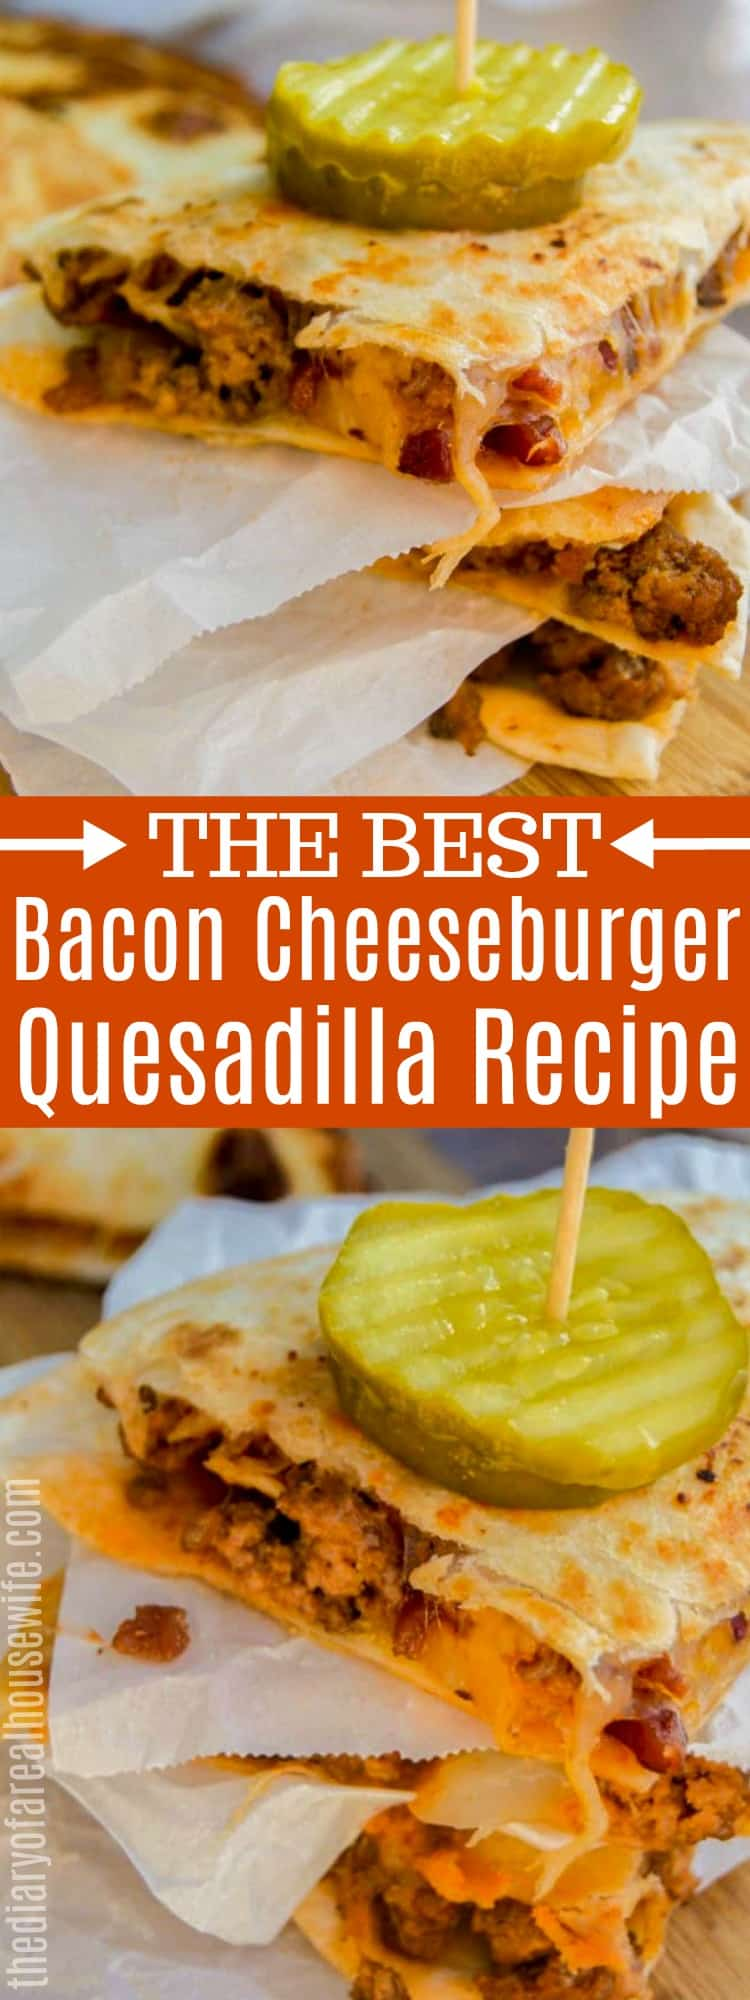 Bacon Cheeseburger Quesadilla